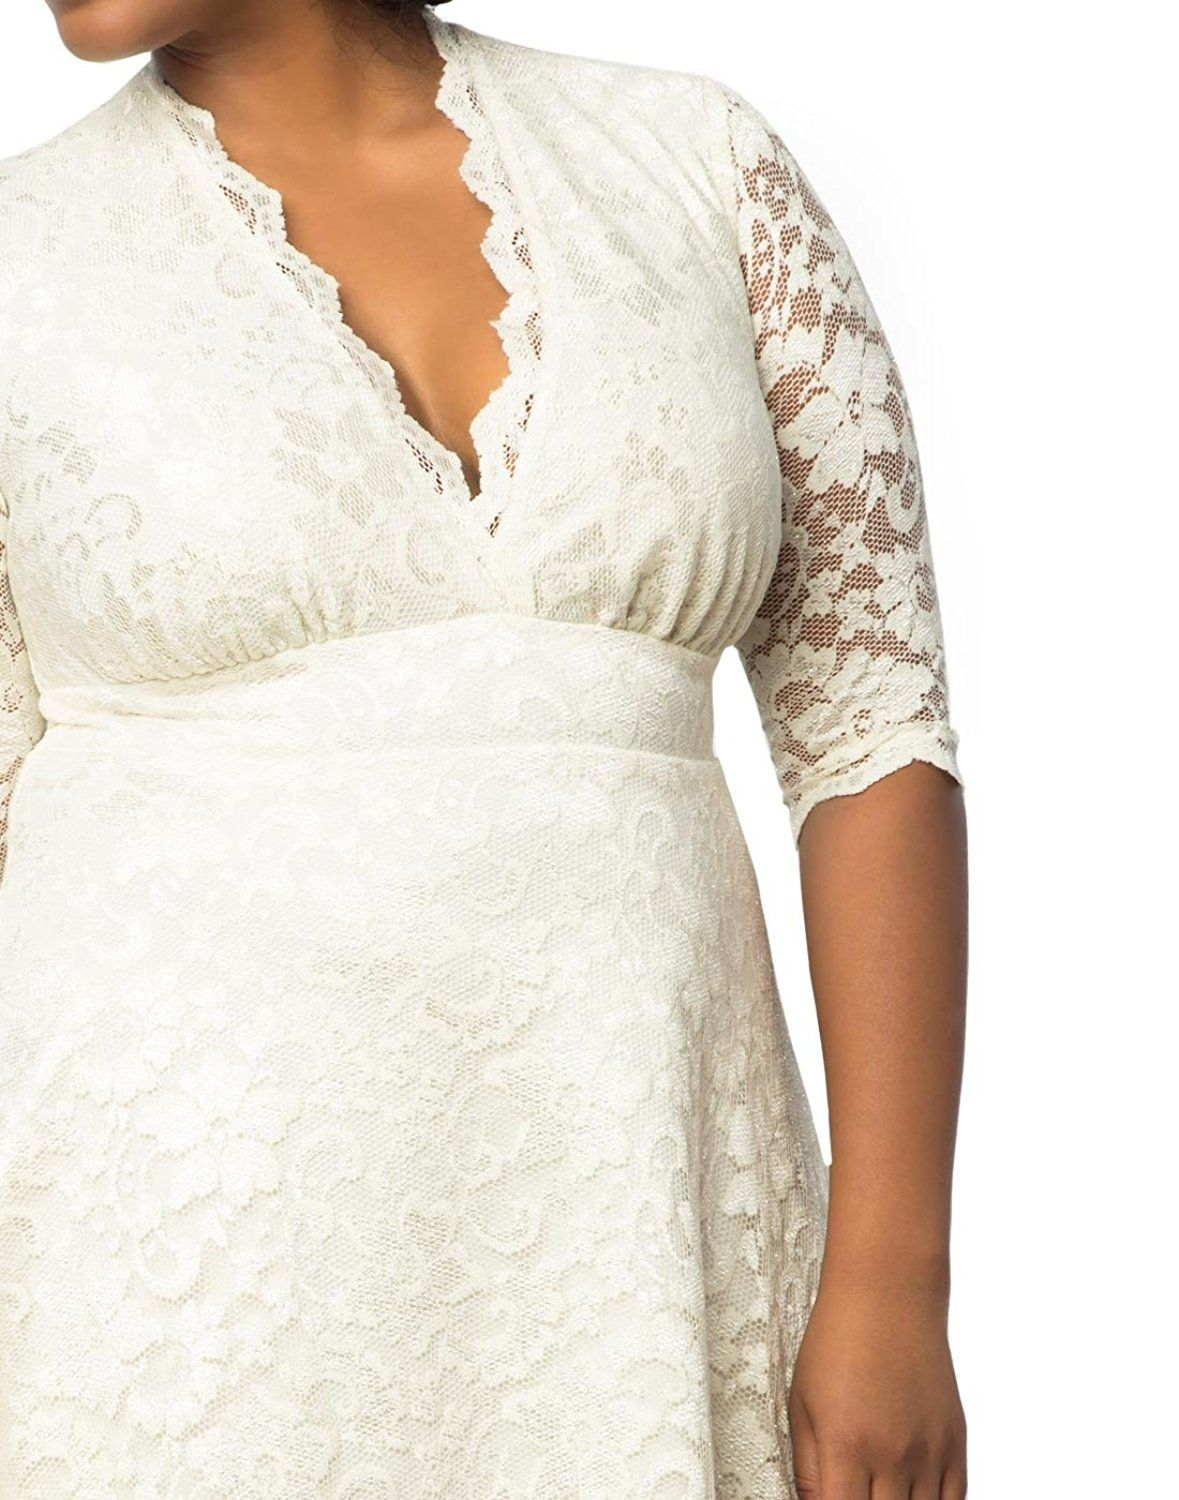 Kiyonna wedding dress  Kiyonna Womenus Plus Size Wedding Belle Dress at Amazon Womenus